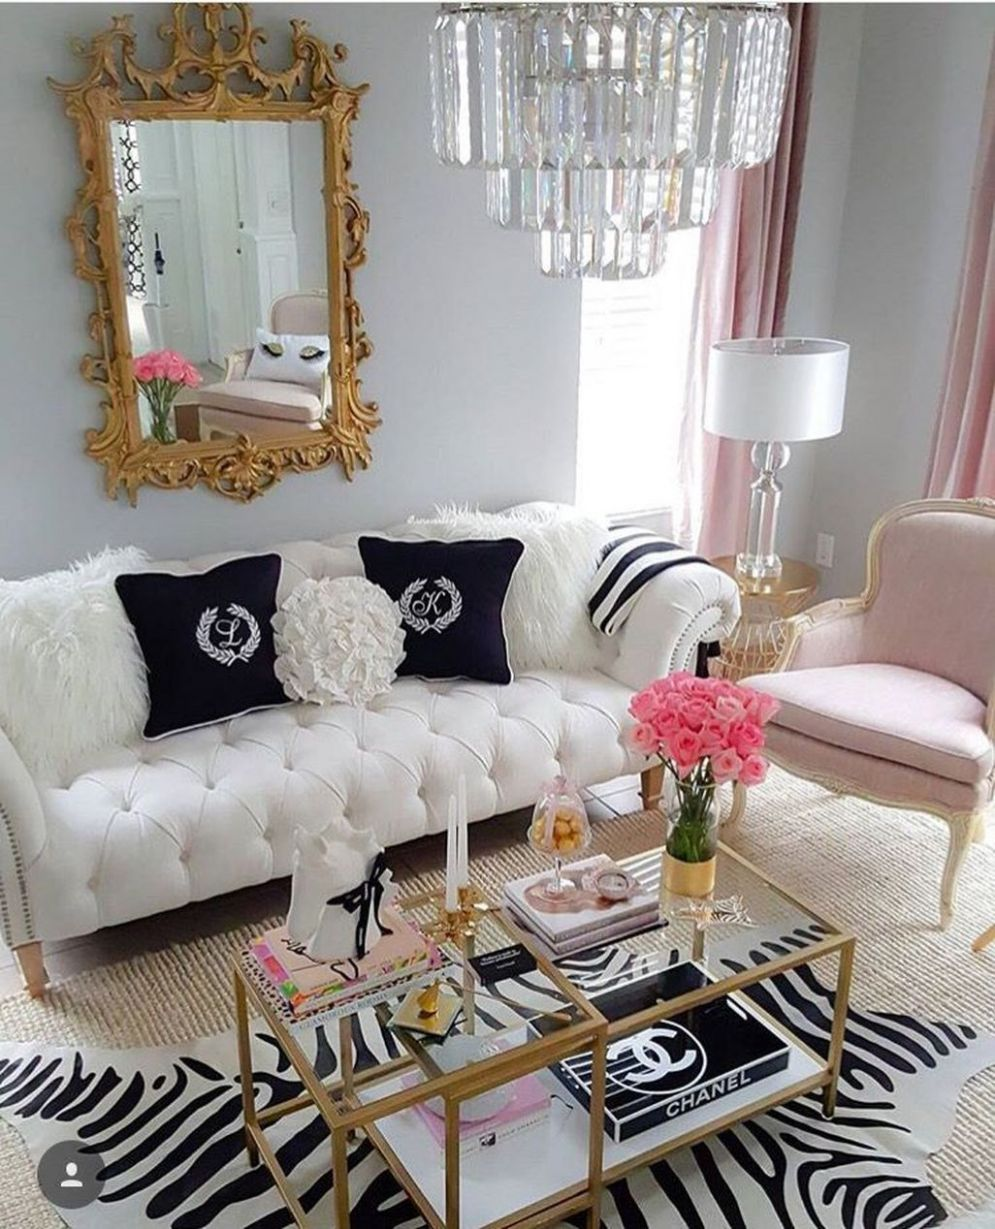 11 Cute Girly Apartment Décor Ideas in 11 | Girly apartment ...